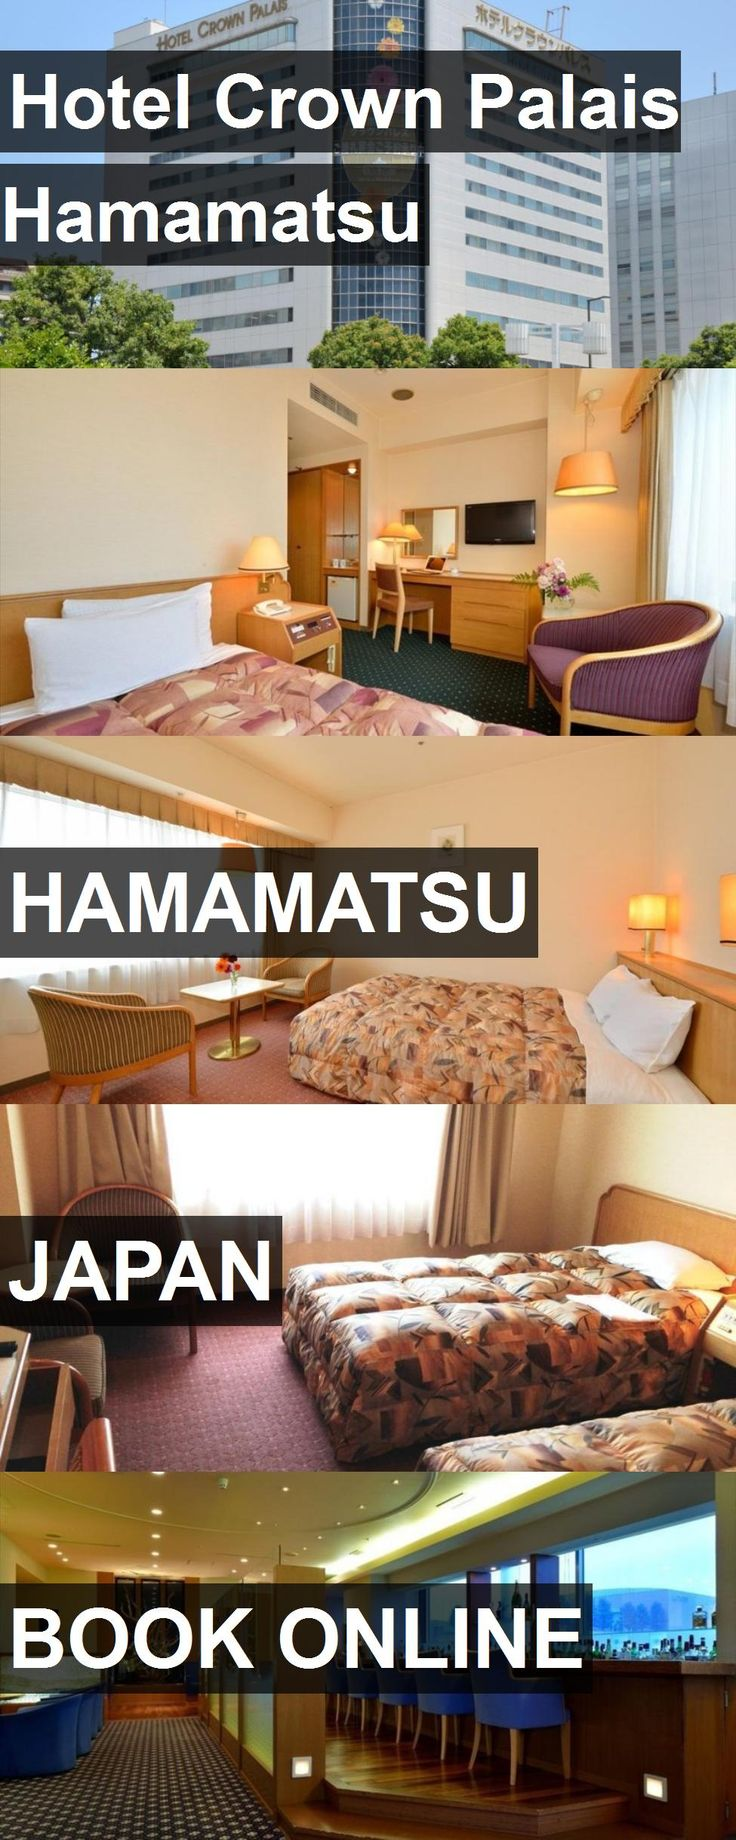 Hotel Crown Palais Hamamatsu in Hamamatsu, Japan. For more information, photos, reviews and best prices please follow the link. #Japan #Hamamatsu #travel #vacation #hotel